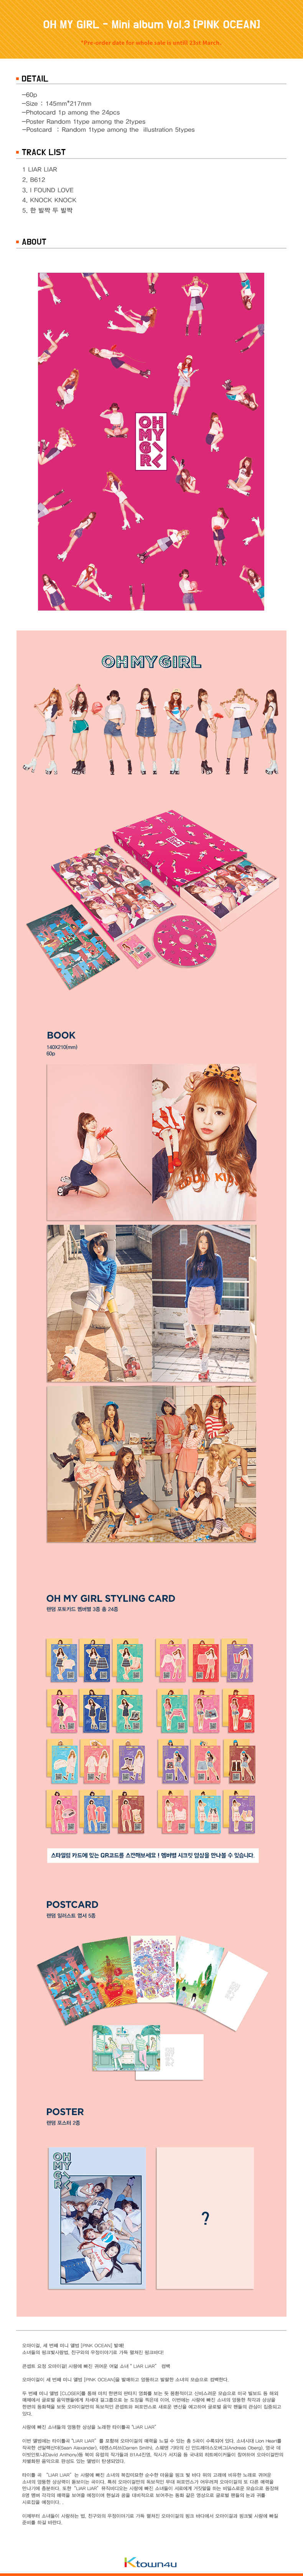 Poster + OH MY GIRL - Mini album Vol.3 [PINK OCEAN]